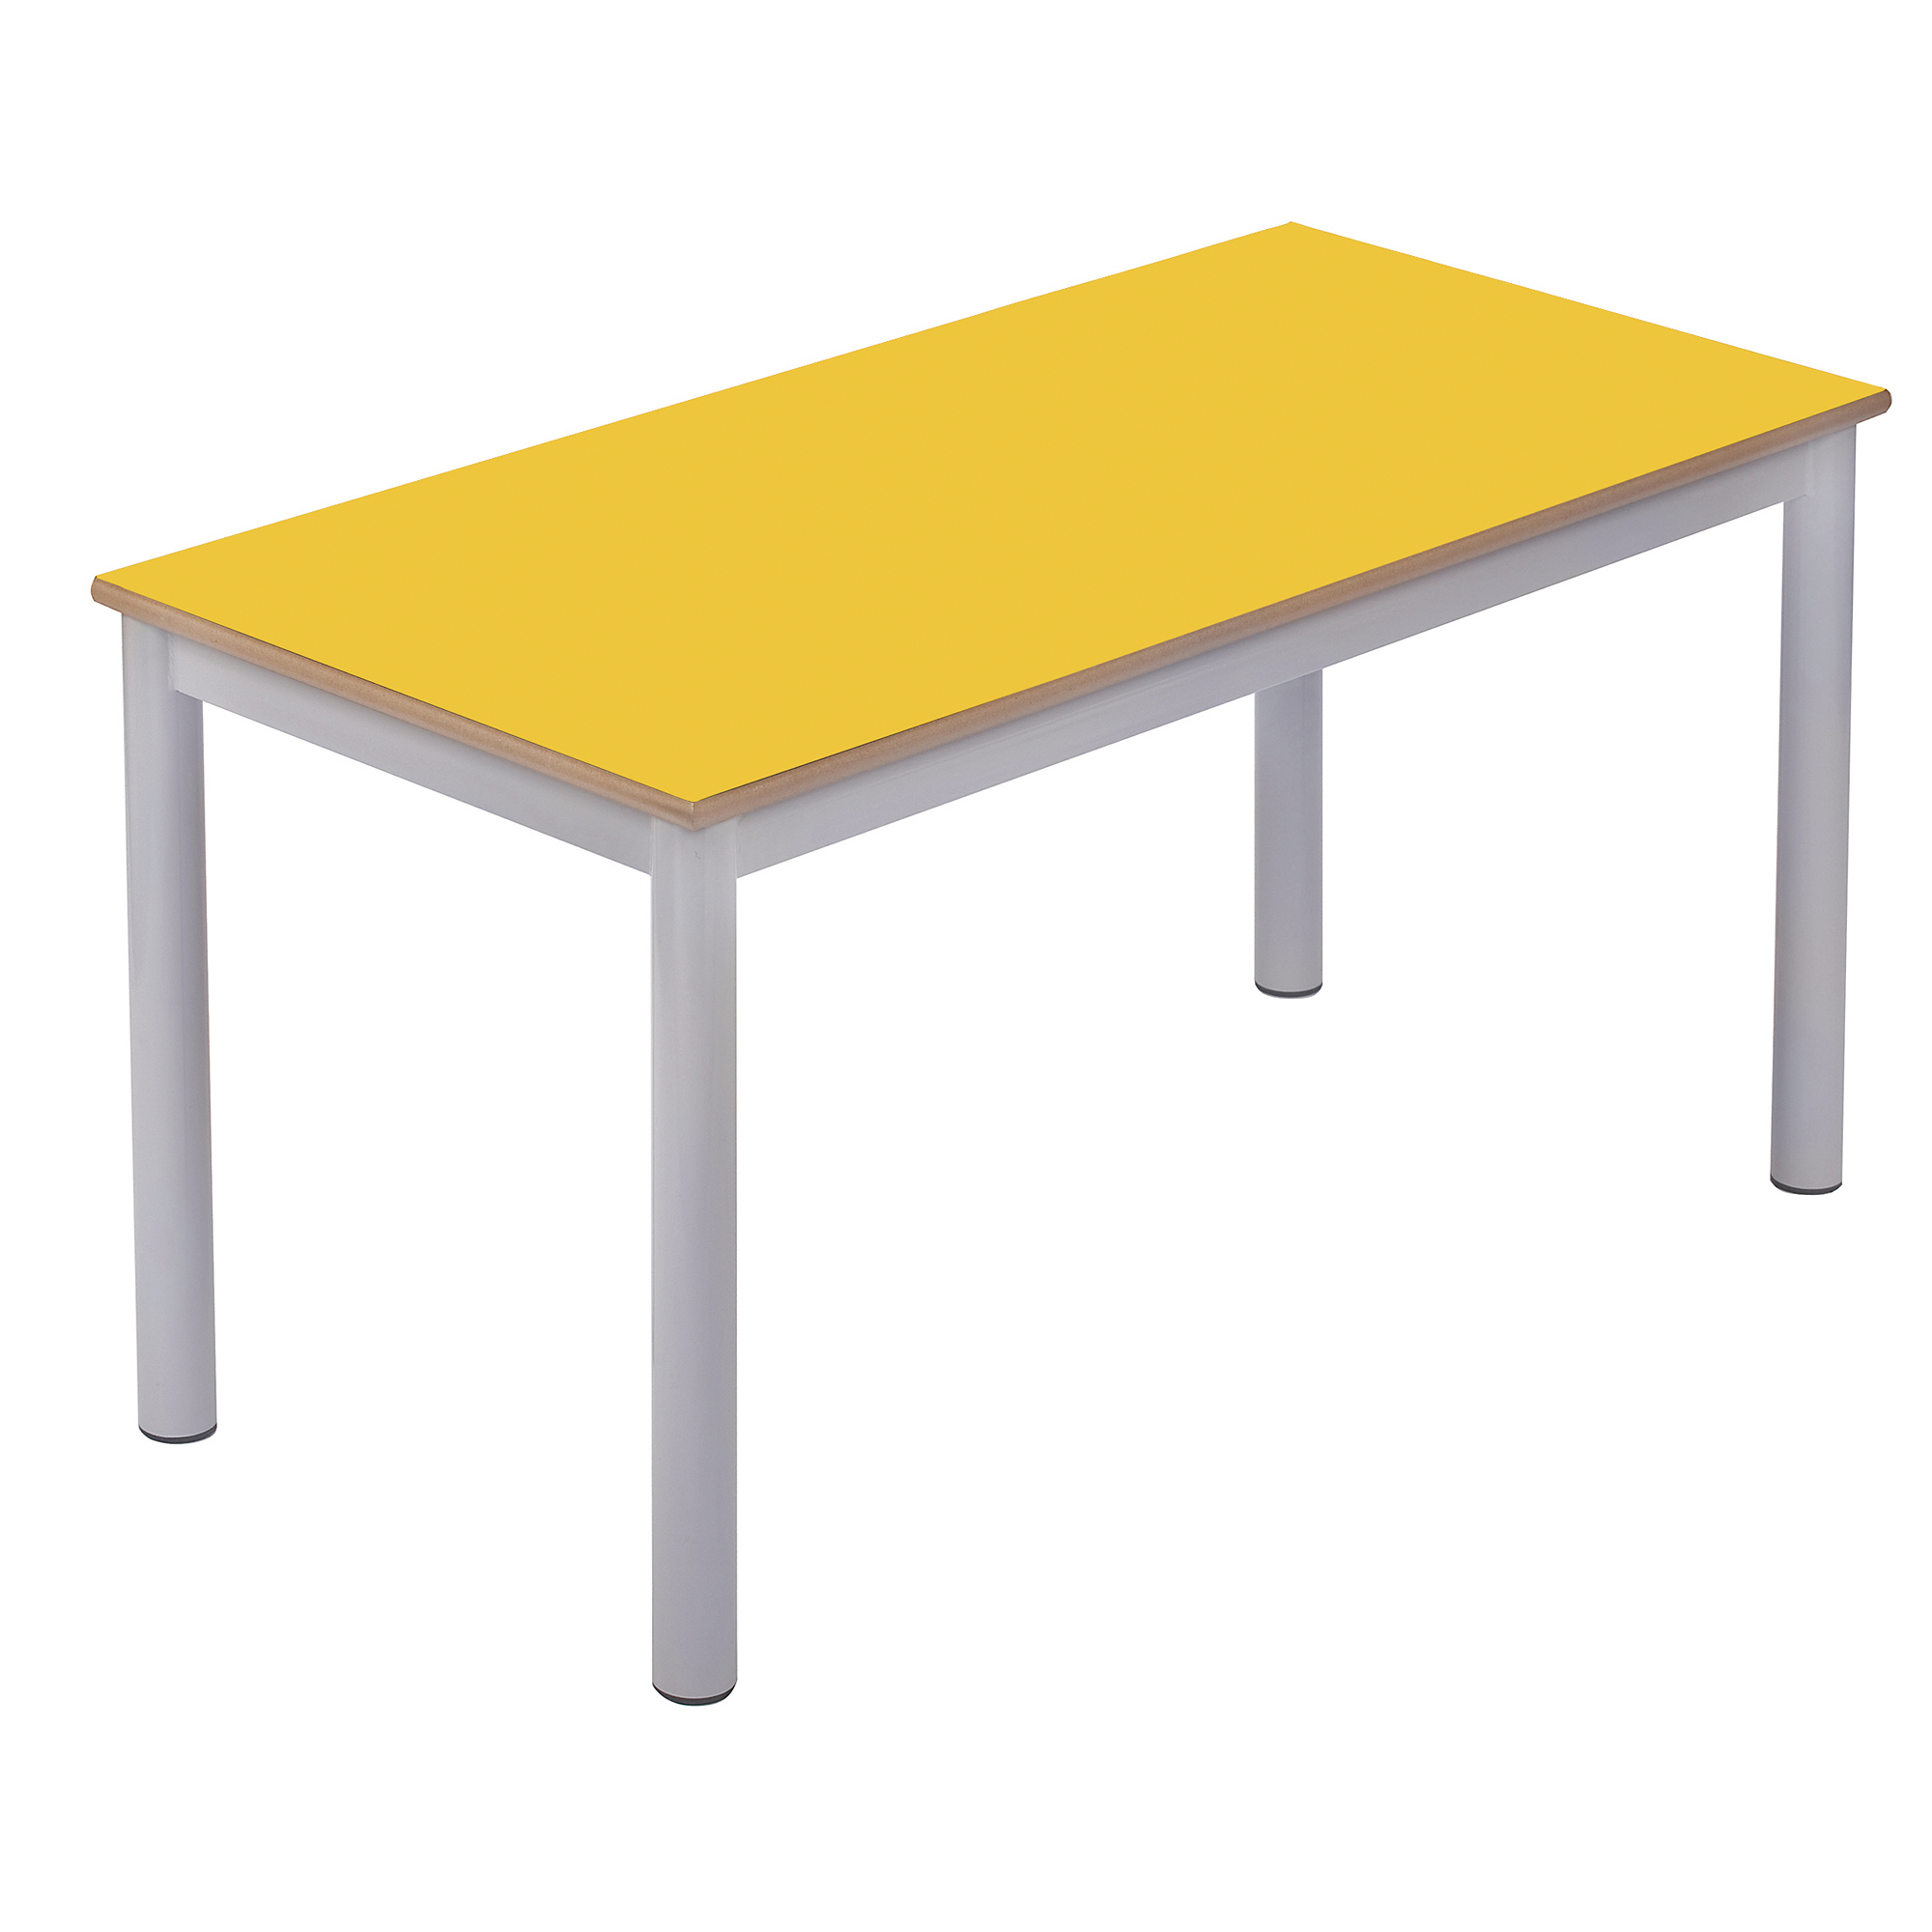 shipping free product writing q danish desk drawer modern garden today marin inspire overstock home yellow